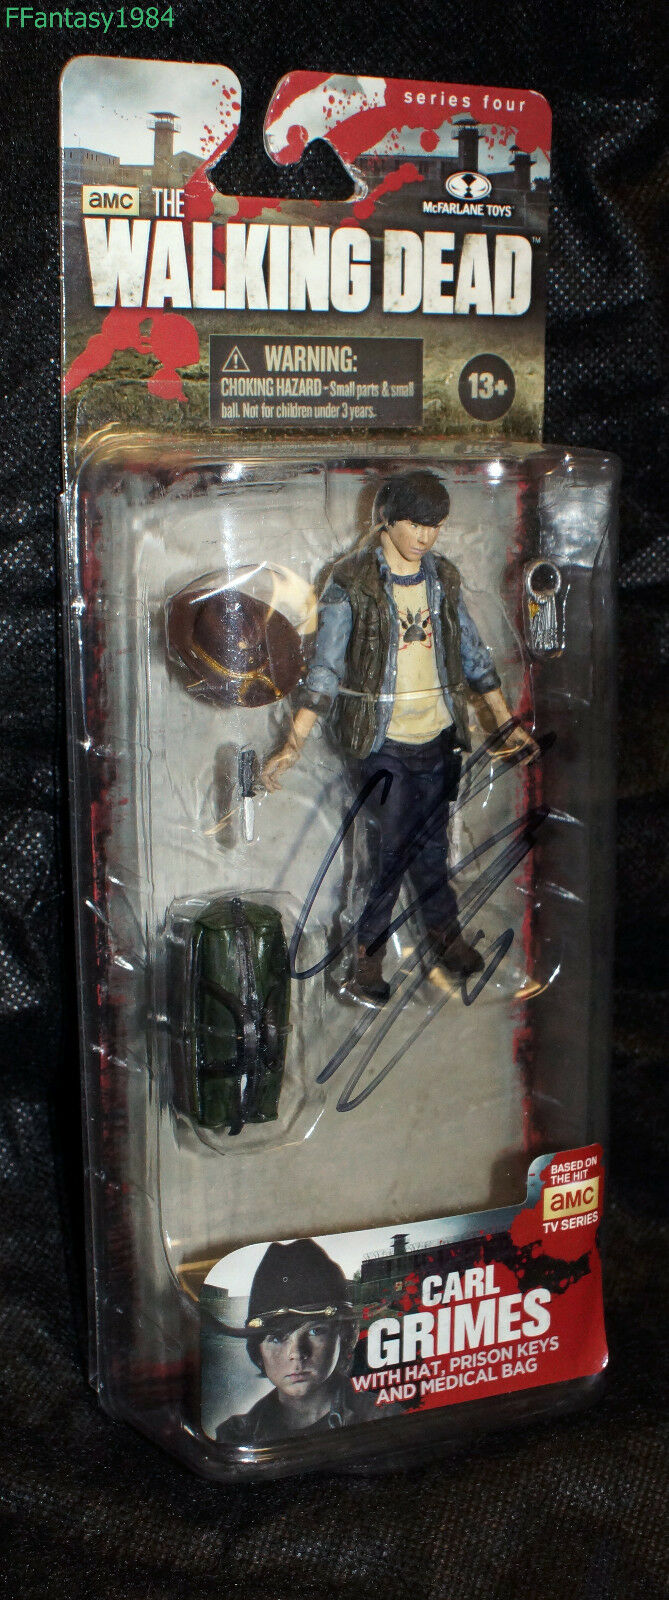 The Walking Dead Series 4 Carl Grimes Signed Chandler Riggs NIB